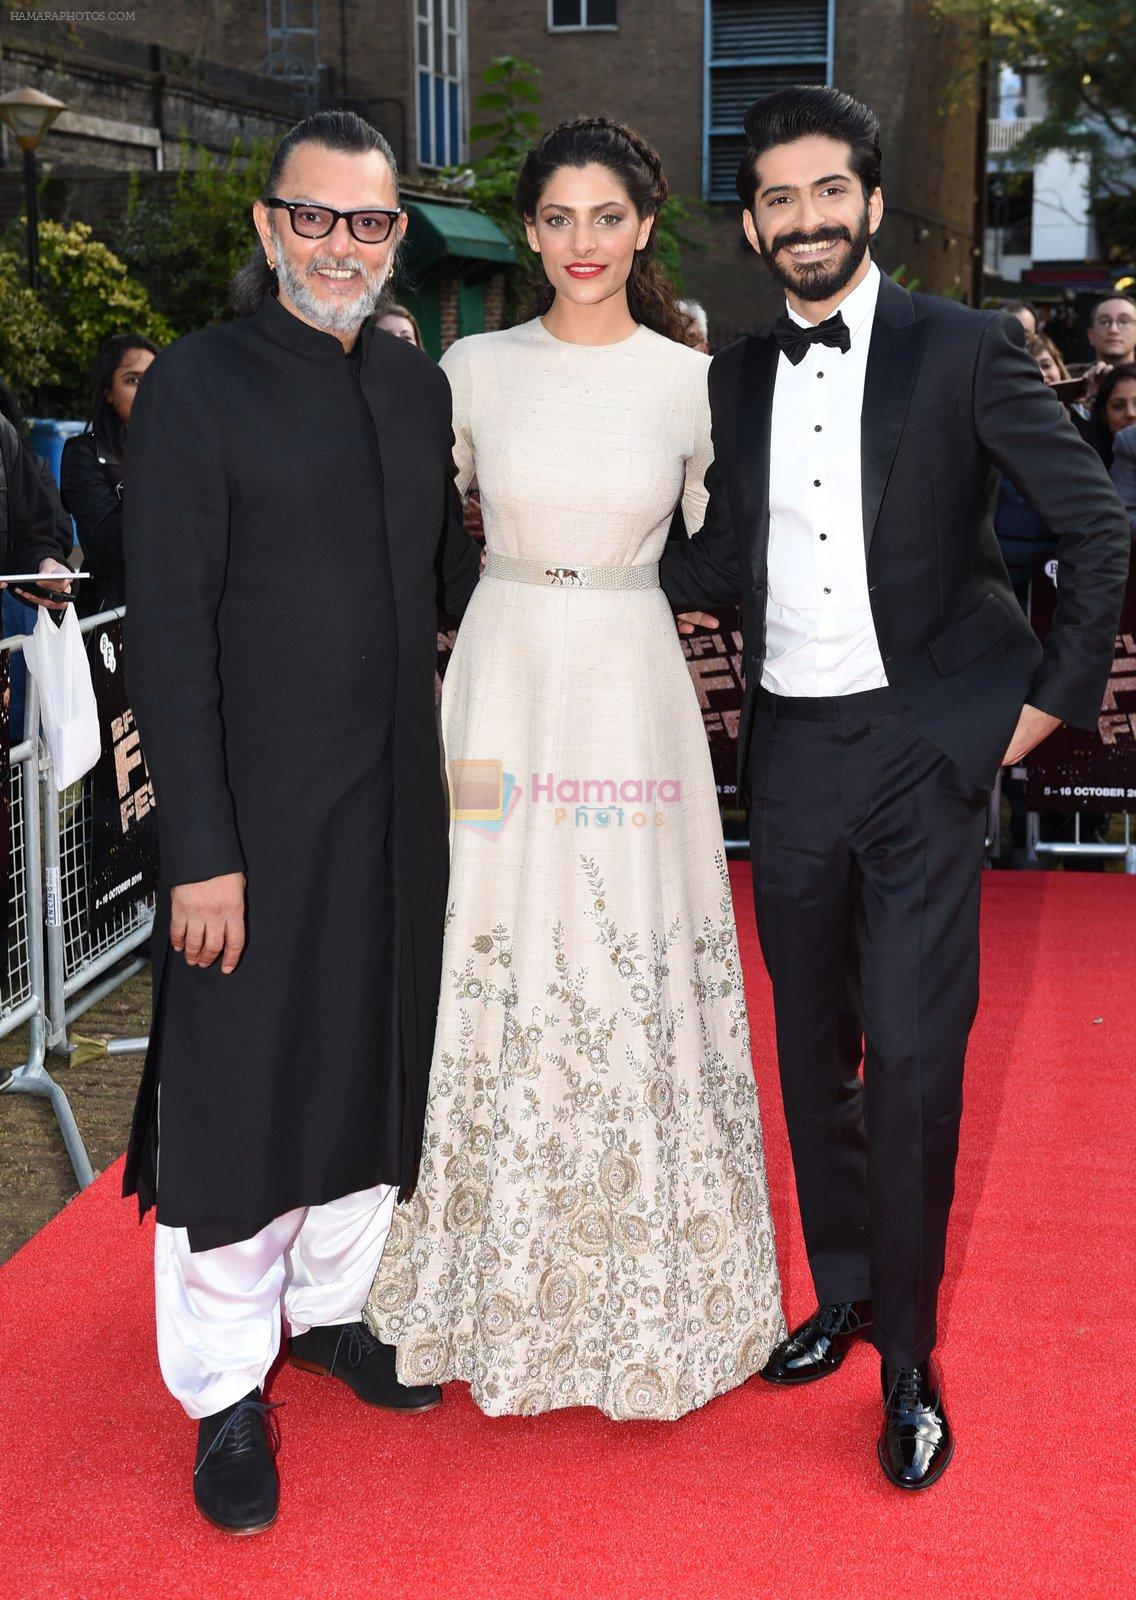 Harshvardhan Kapoor, Saiyami Kher, Rakesh Mehra at Mirzya premiere in BFI London Film festival on 10th Oct 2016